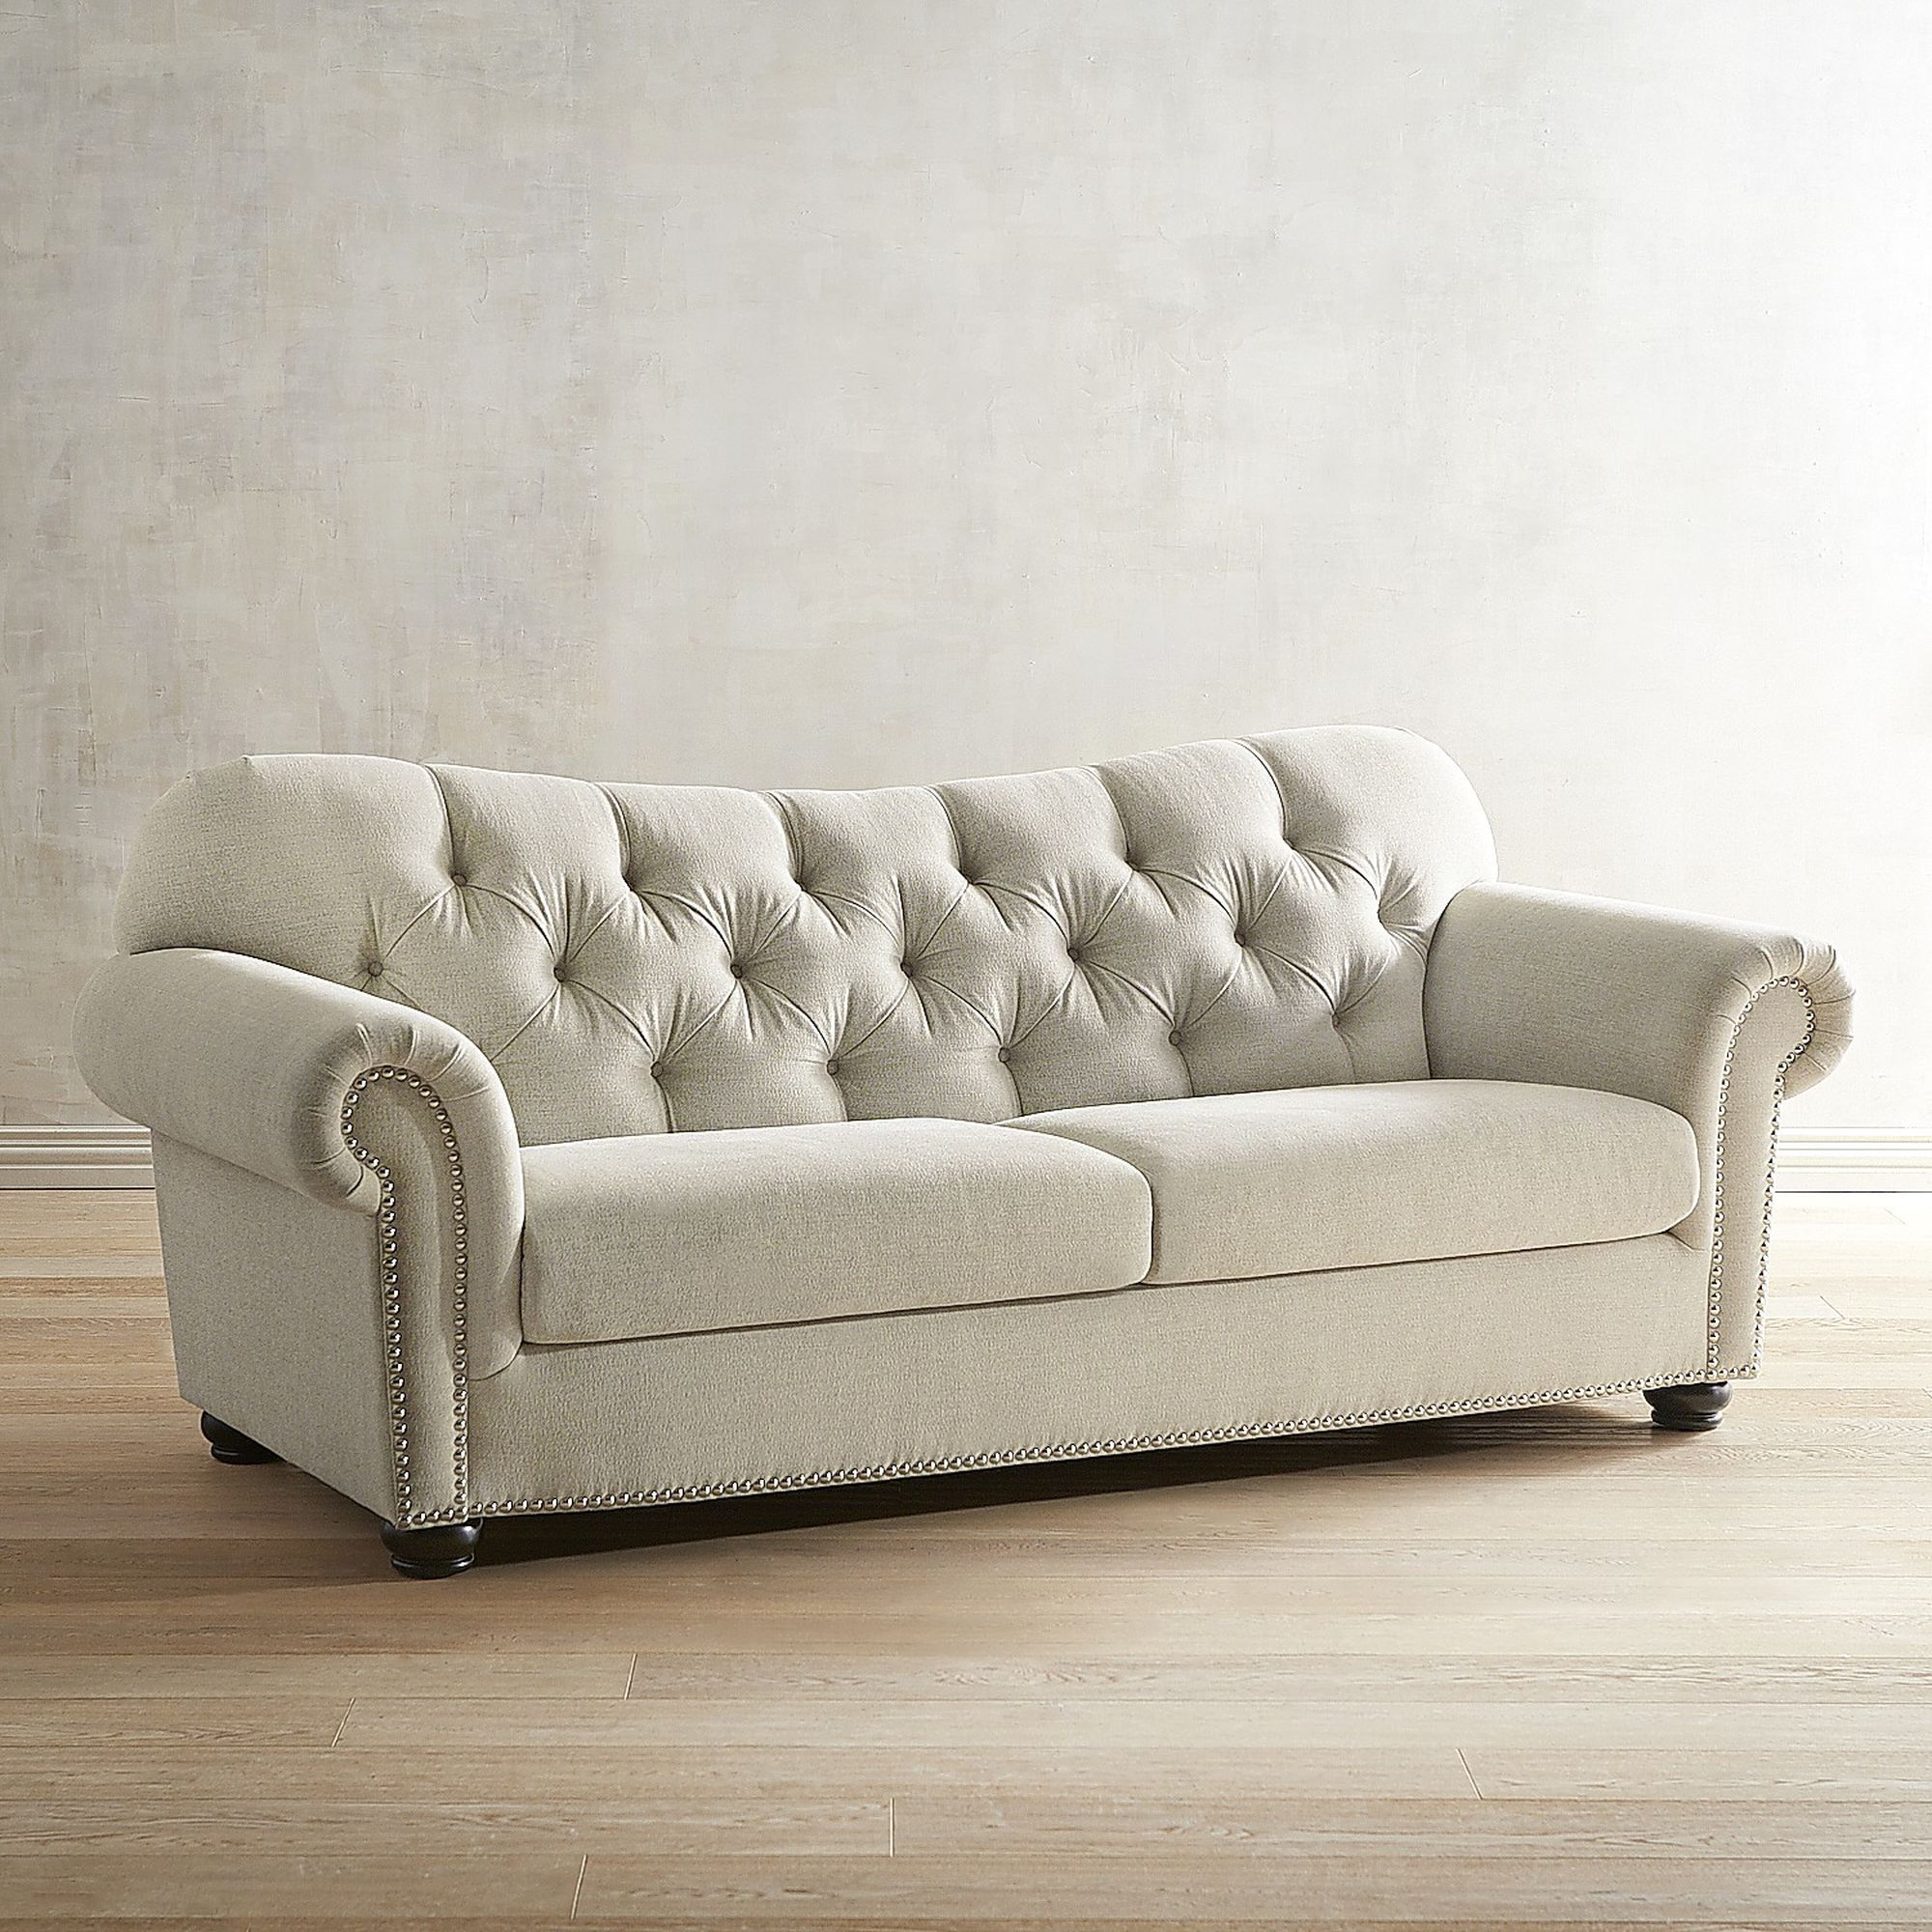 photo leather inspirations fauxr headrestwhite with white couch headrestcrystal crystal sofa surprising sofawhite tufted